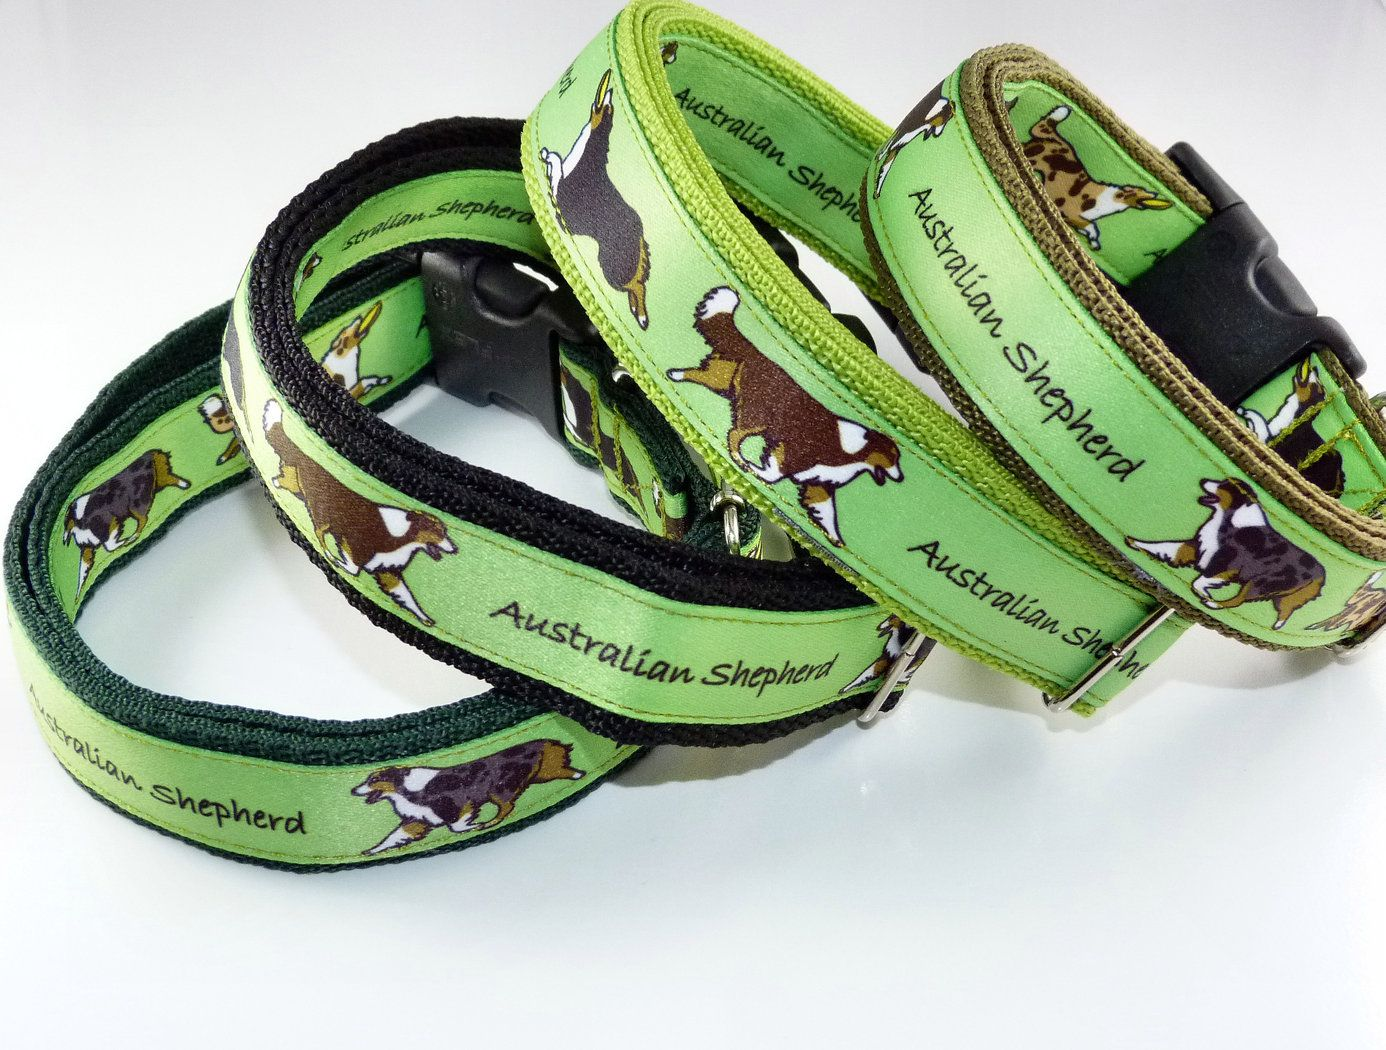 Halsband 25mm breit / dog collars